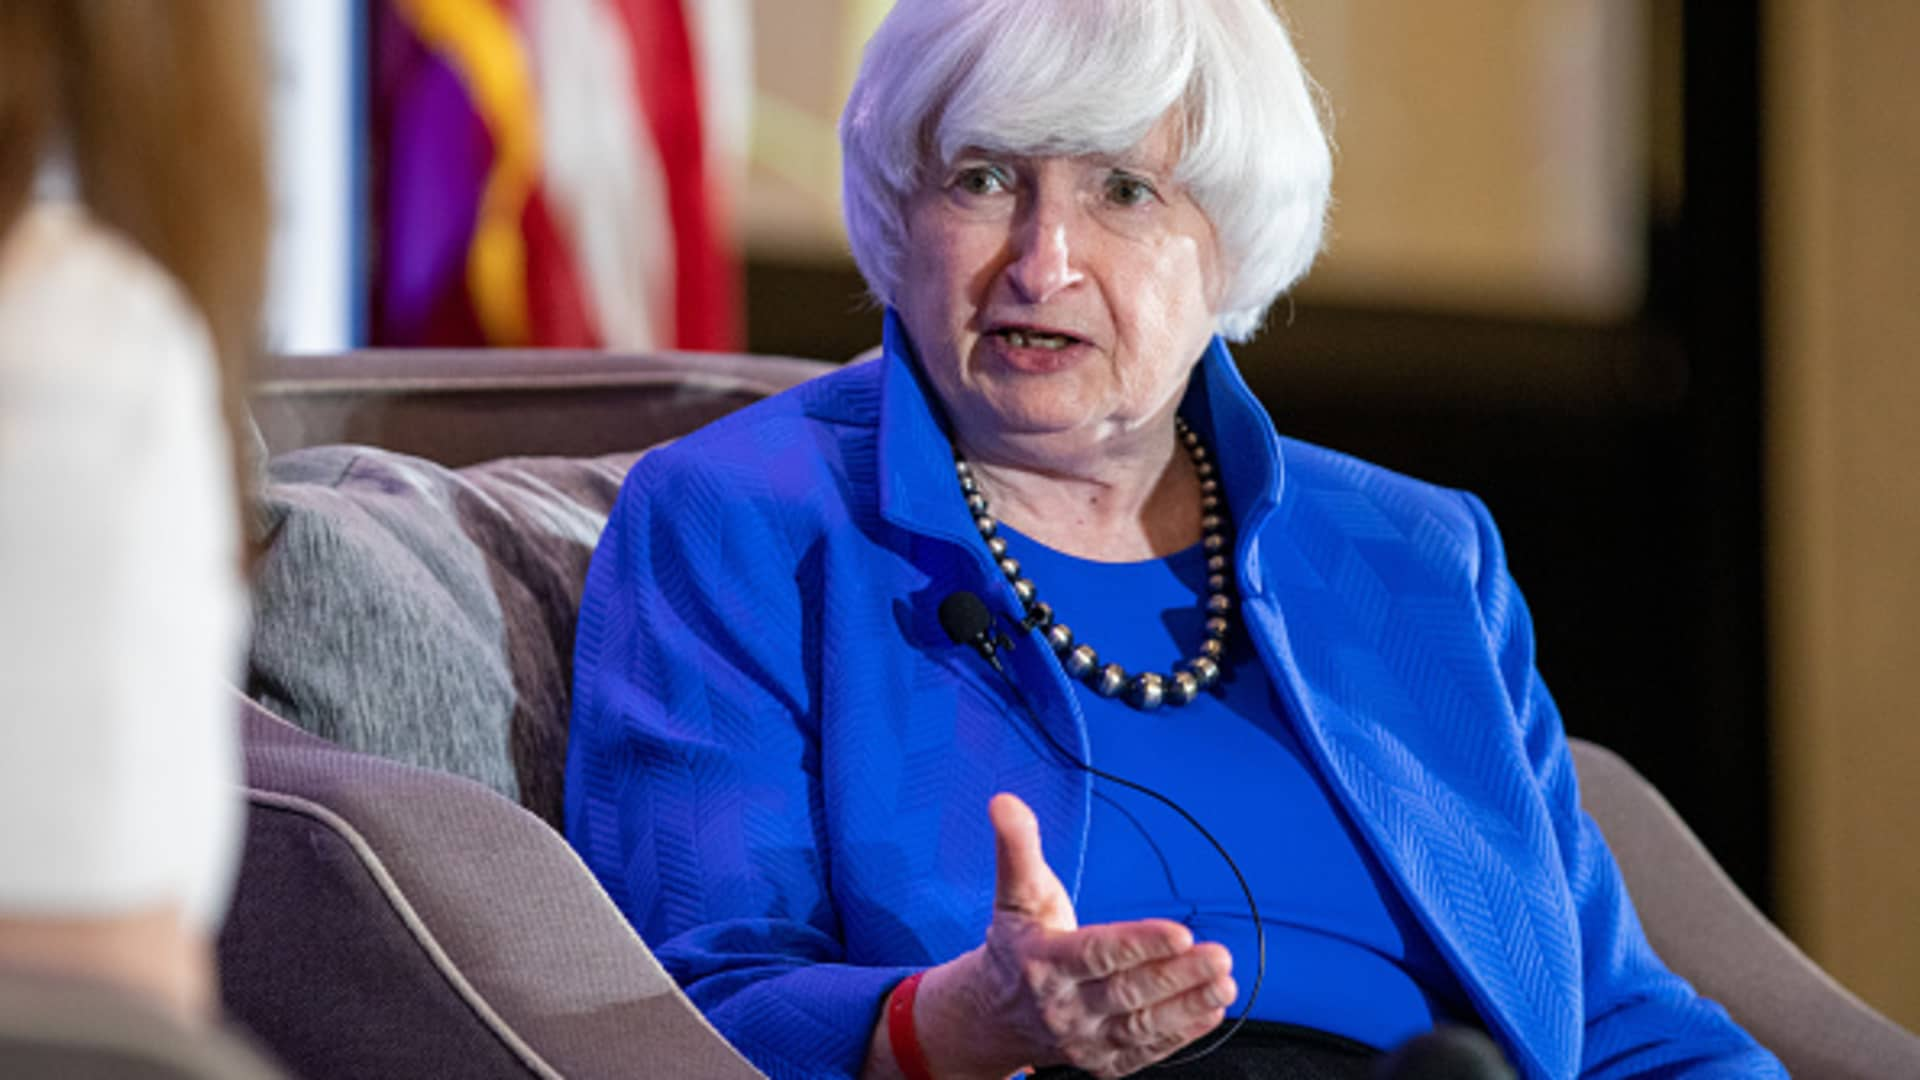 Janet Yellen, U.S. Treasury secretary, speaks during an interview at the National Association of Business Economics (NABE) annual meeting in Arlington, Virginia, U.S., on Tuesday, Sept. 28, 2021.